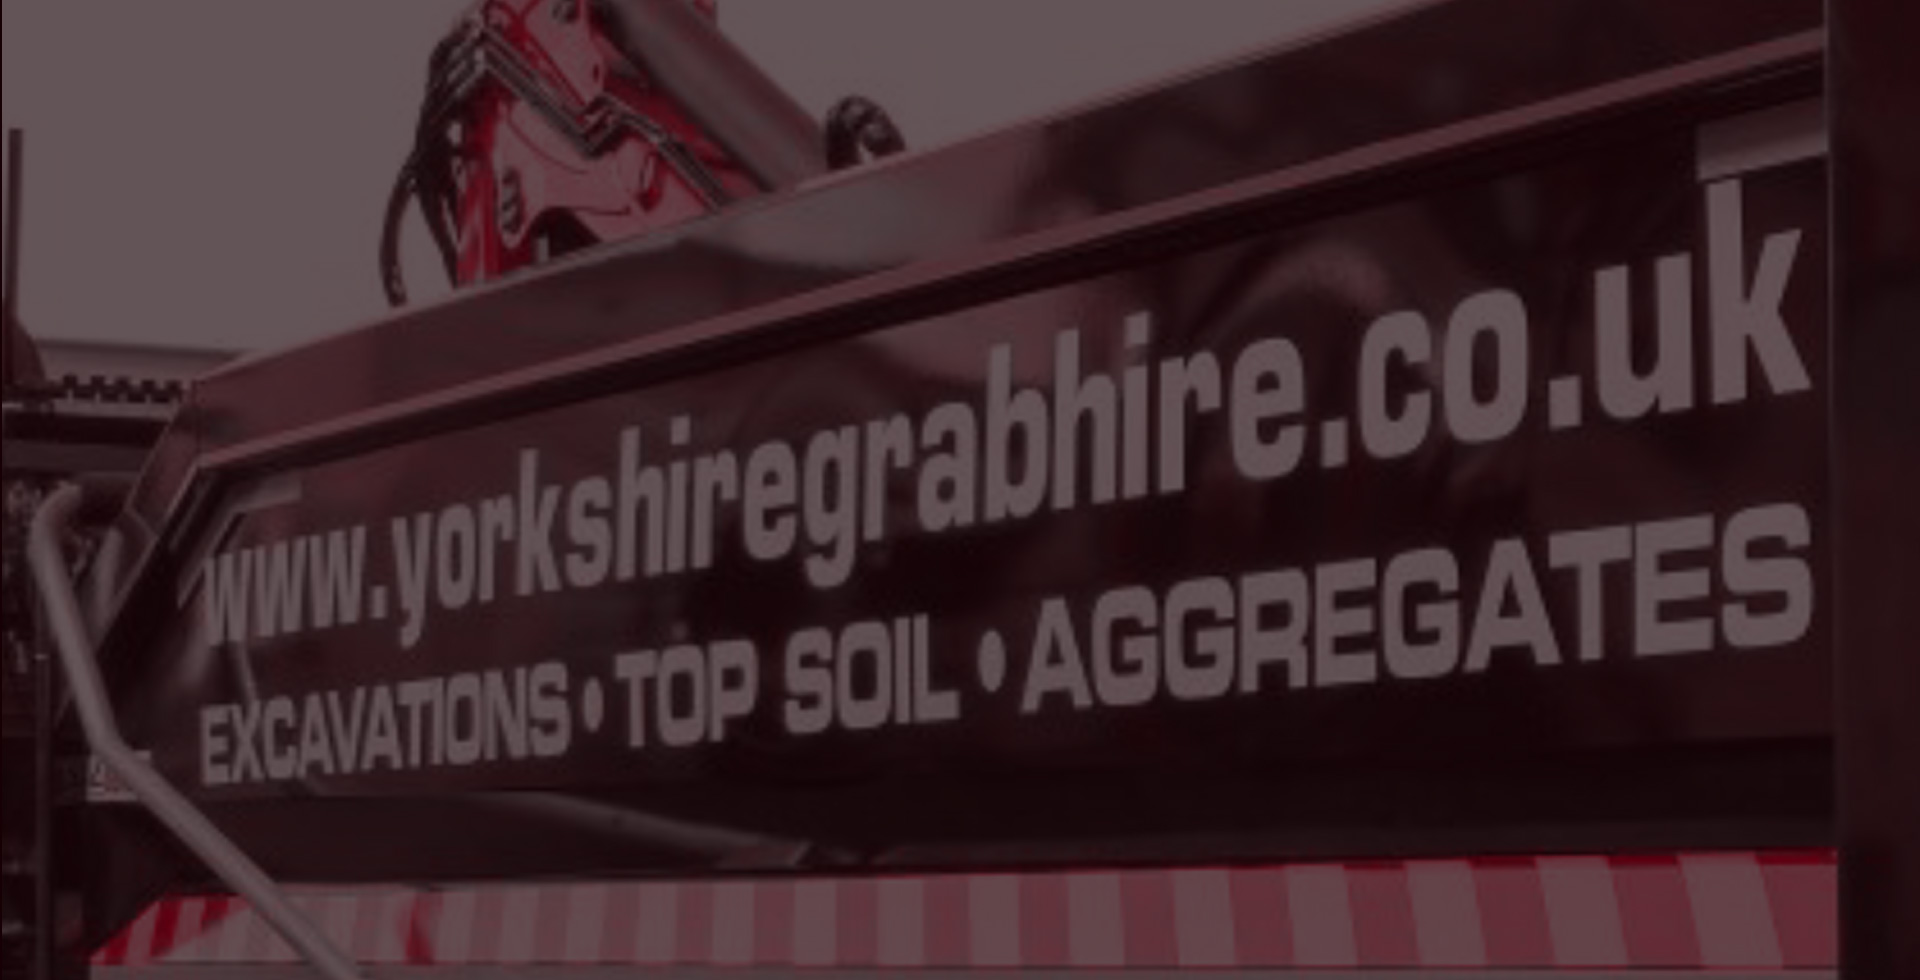 Yorkshire Grab Hire :: t: 01924  480992. Providing Grab Hire services throughout Yorkshire. We collect and dispose of all types of soil, rubbish, rubble, trees, plant cuttings  and other waste material from your site. We do this using eco-friendly, yet cost effective methods.